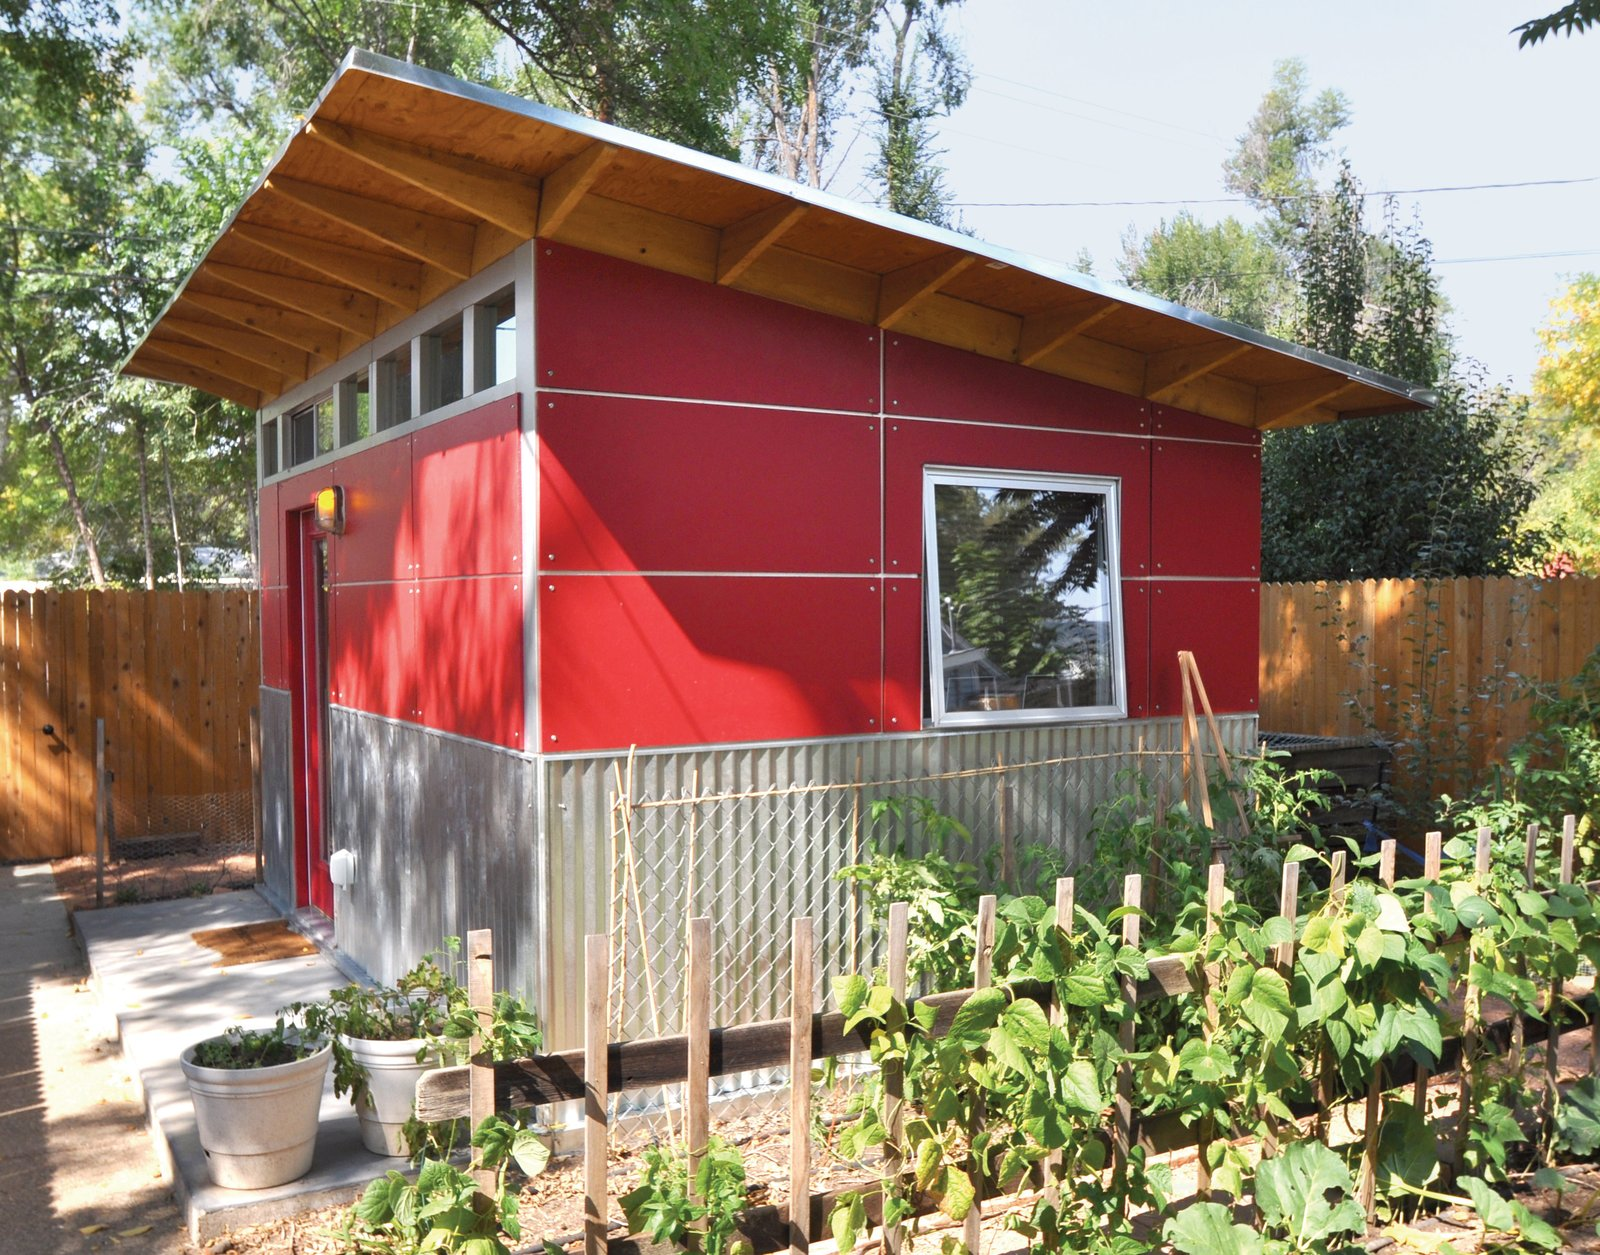 wanted studio alaska once sheds with at again worked in thank we bathroom shed goes have to addition blog that everyone